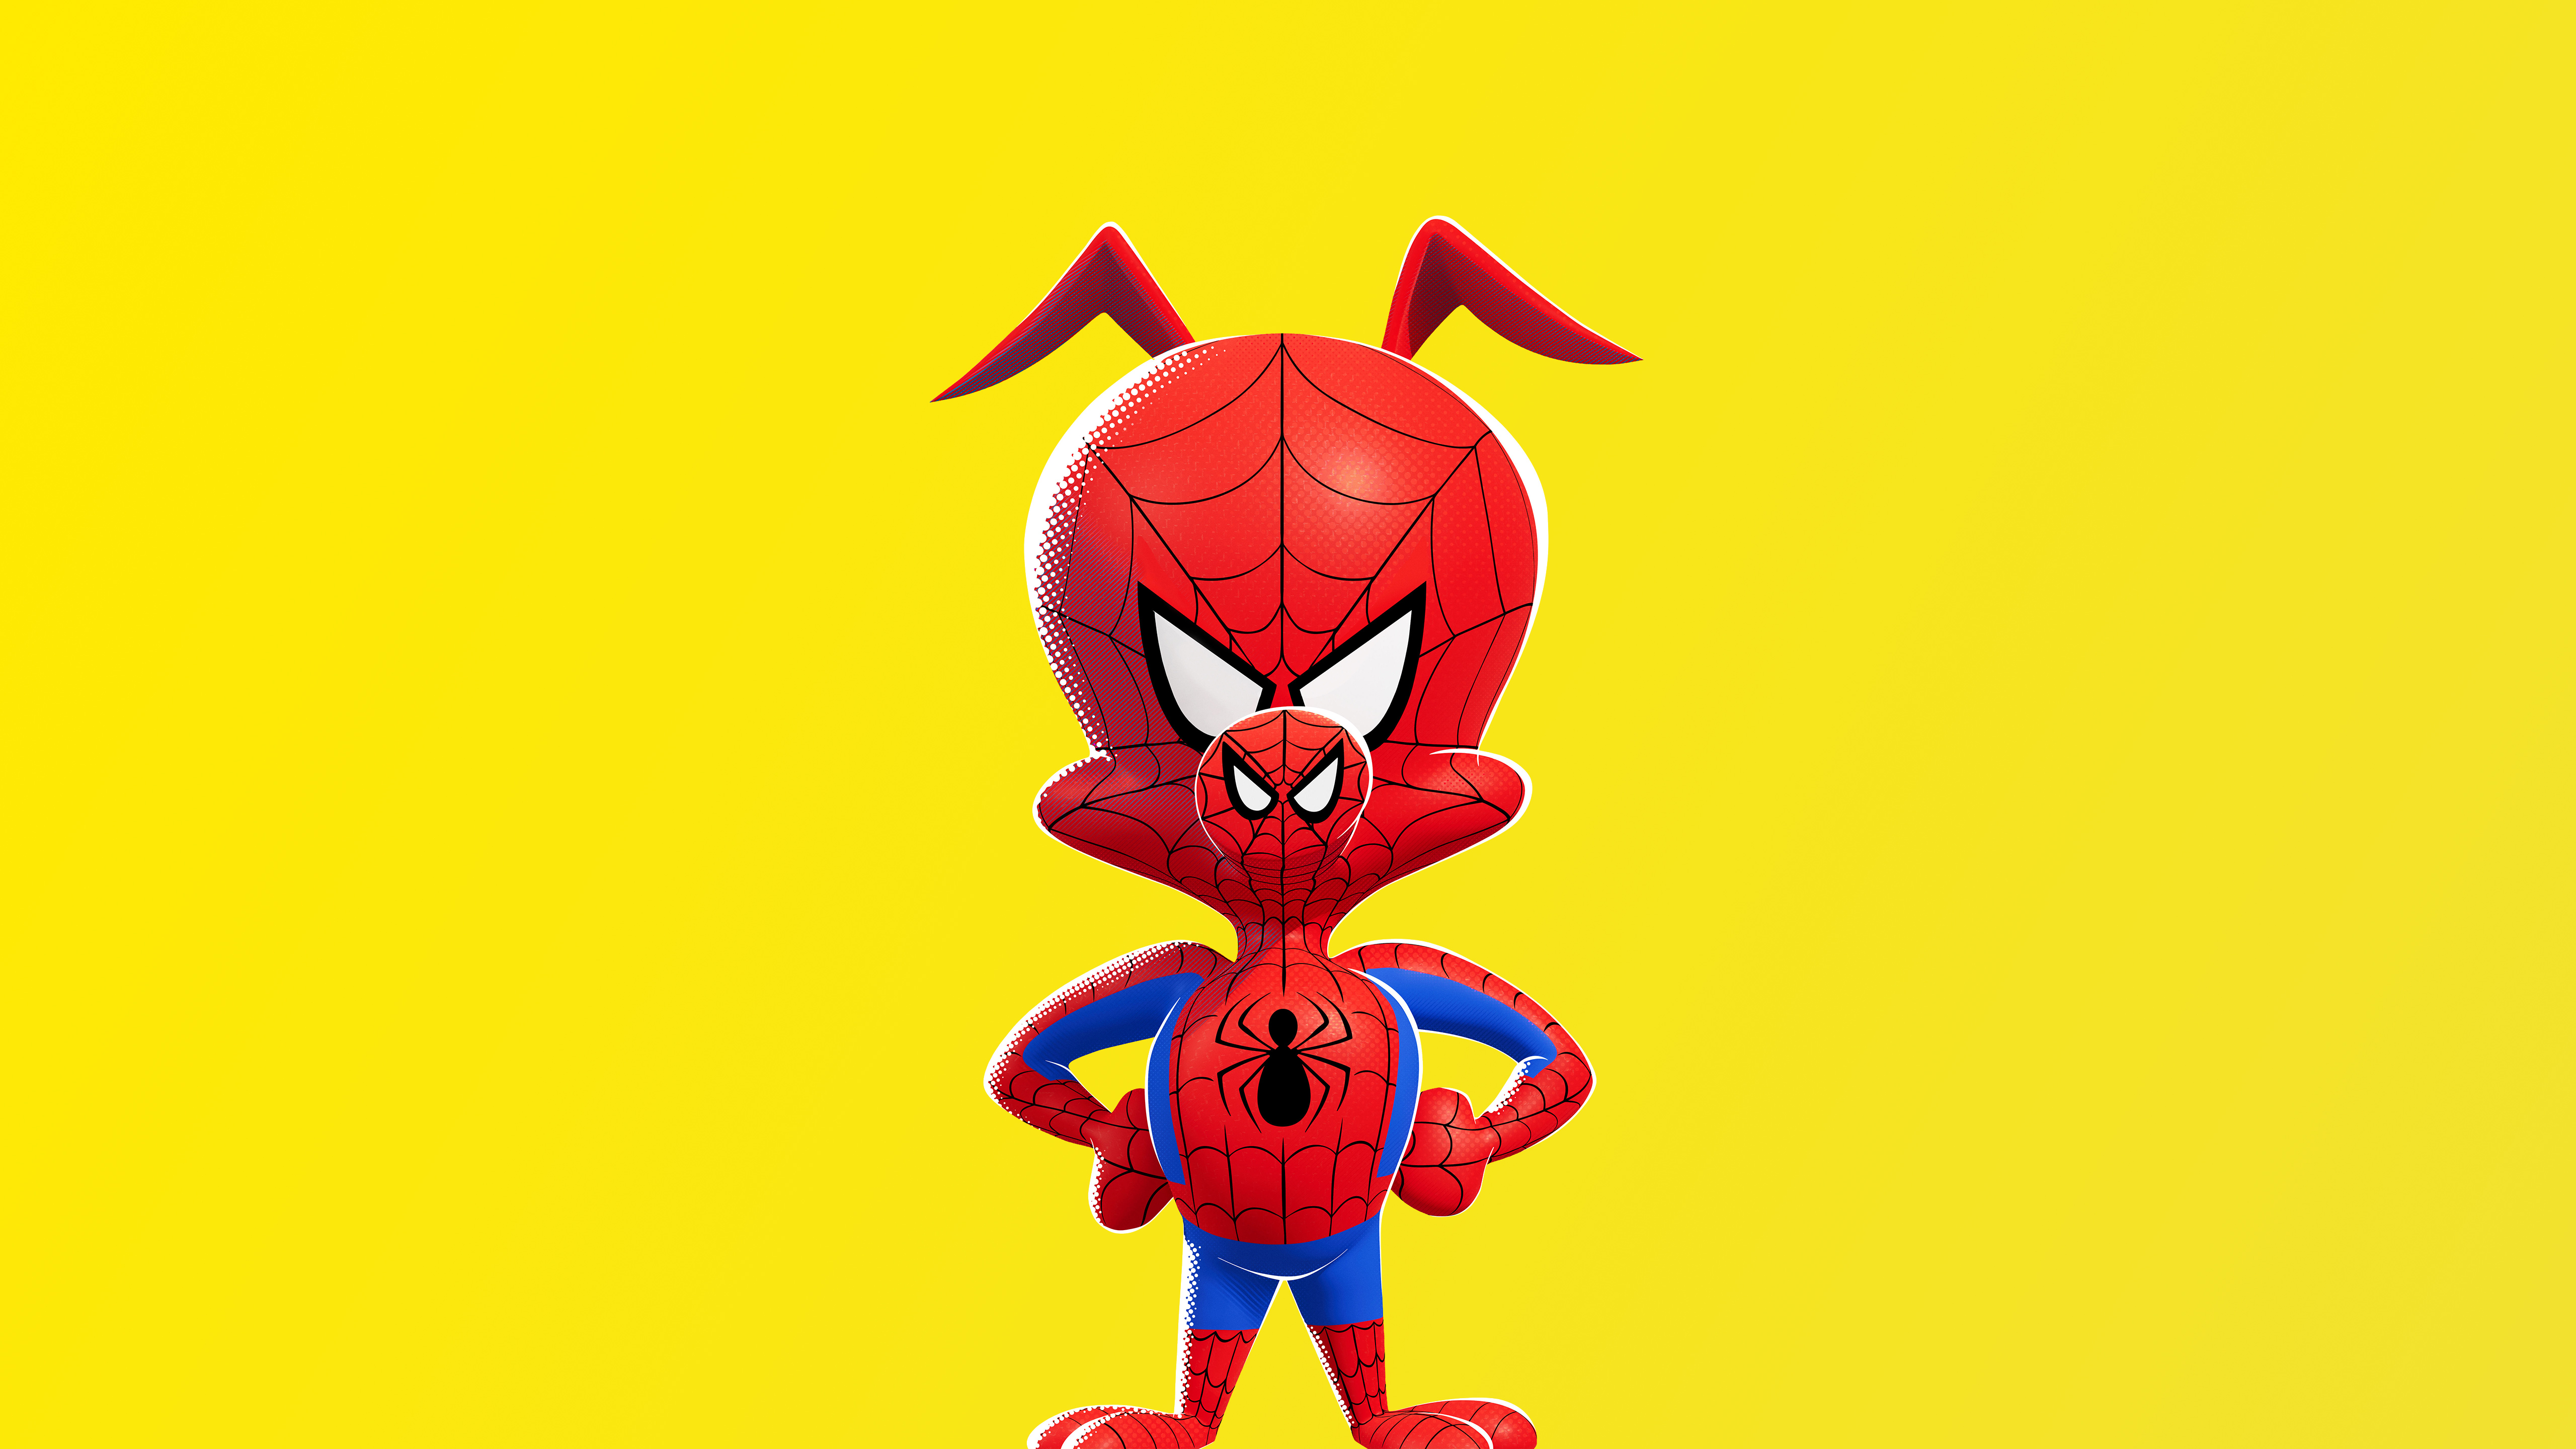 Animated Spider Wallpaper Spider Ham Hd Movies 4k Wallpapers Images Backgrounds